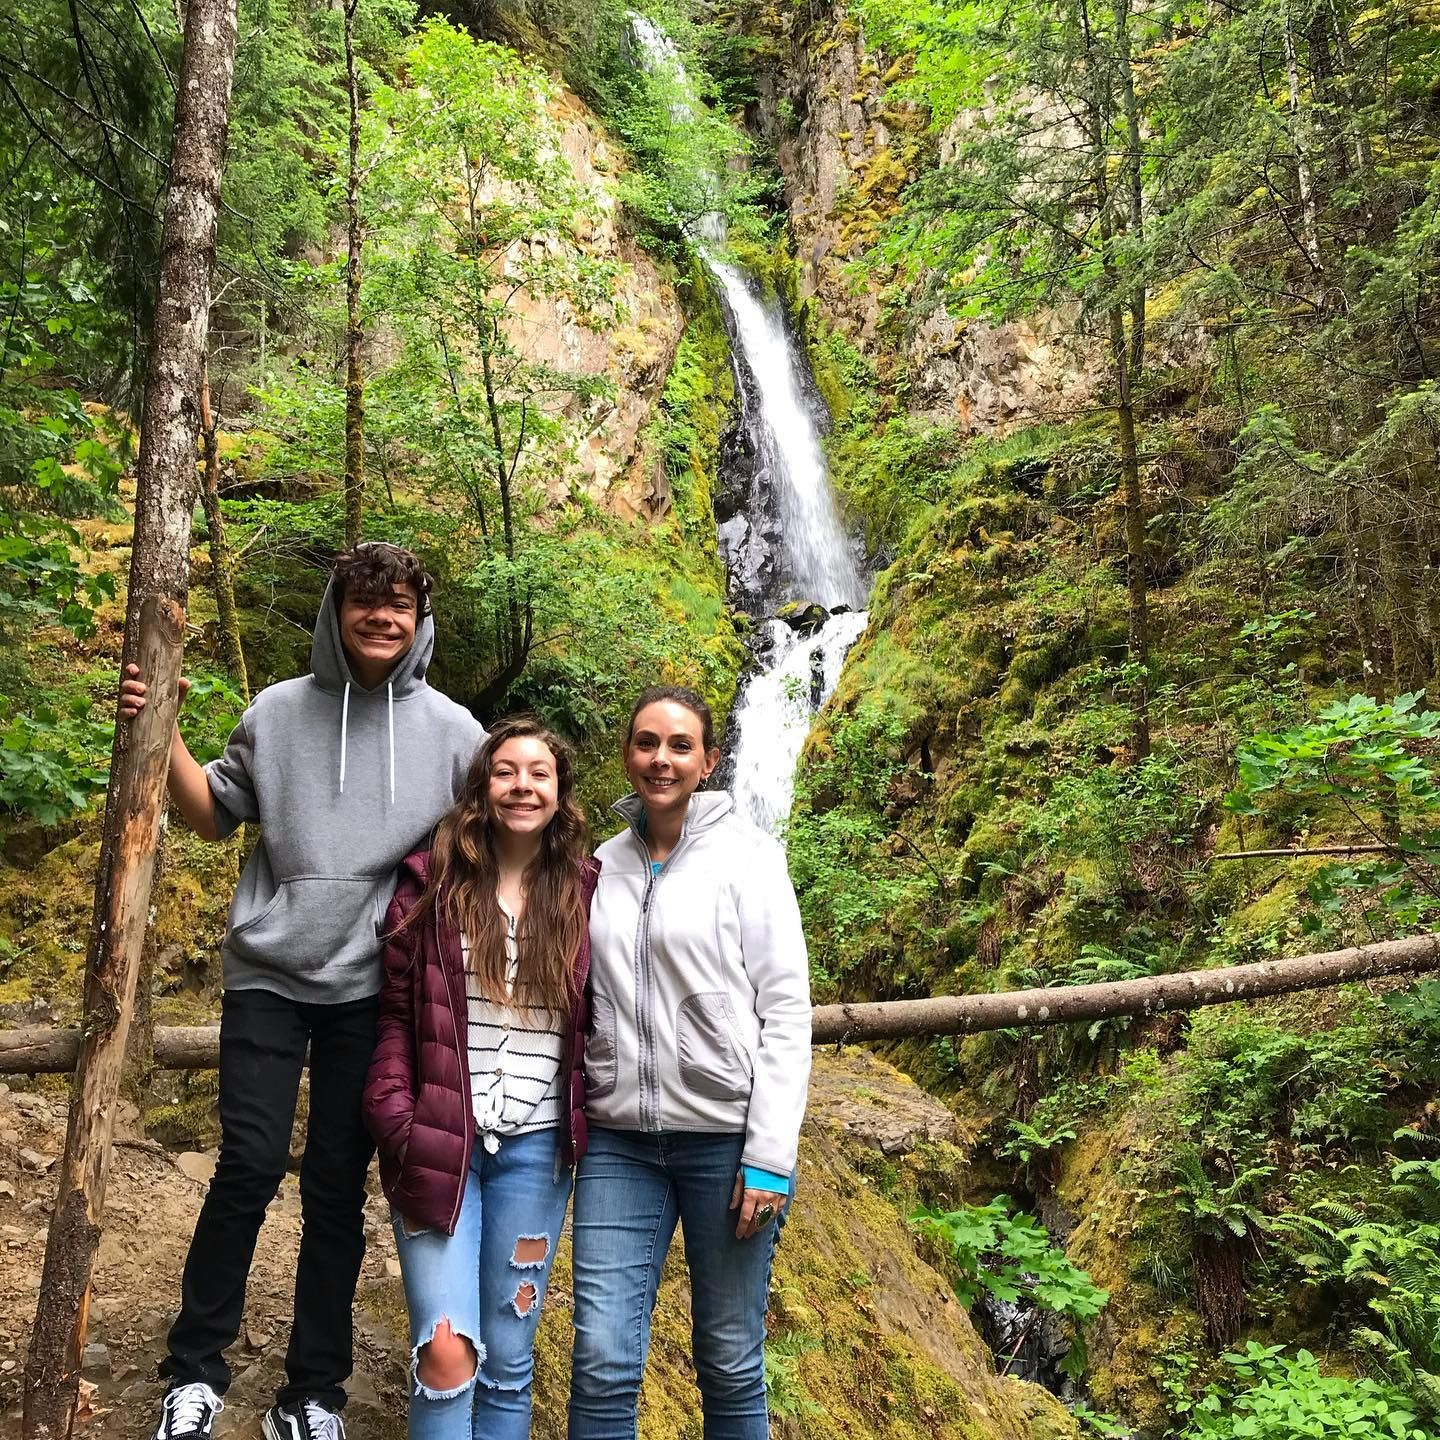 My #hiking buddies. One of my favorite things about #Oregon is all the #waterfall #hikes available.  This one is in between #CascadeLocks and #HoodRiver. On the way to #holeinthewallfalls you will pass cabin creek falls. It's an easy #hike and has lots of places for kids to climb around. #columbiagorge #mommytravels #exploreoregon #oregonexplored #traveloregon